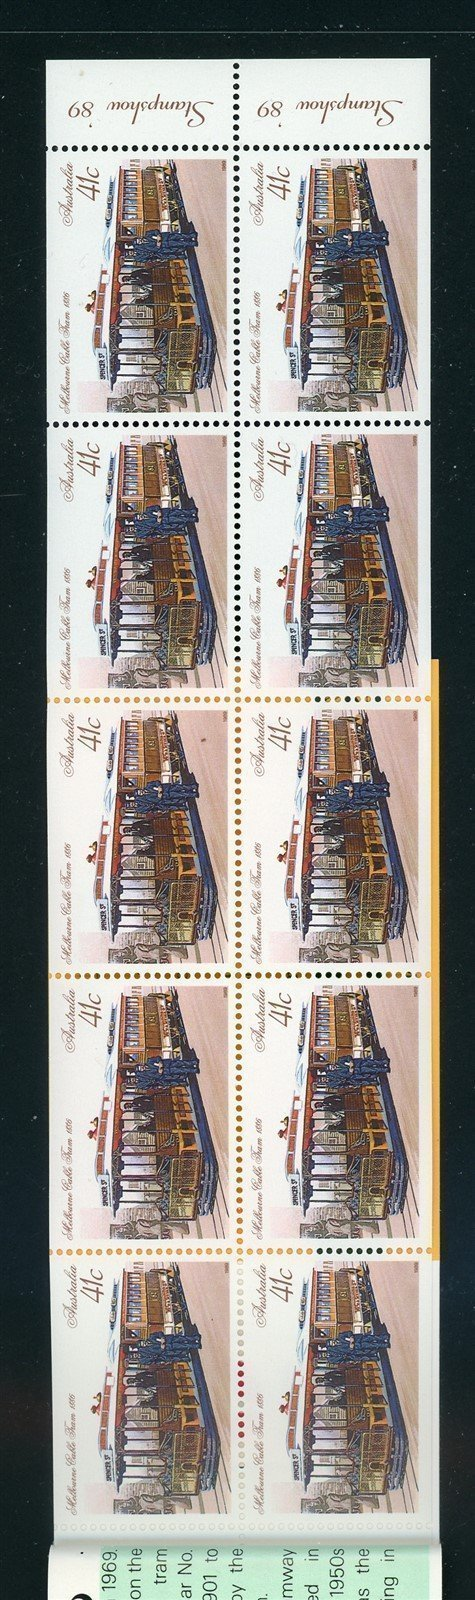 Australia Scott #1156b MNH BOOKLET Melbourne '89 Stamp EXPO TRAINS CV$25+